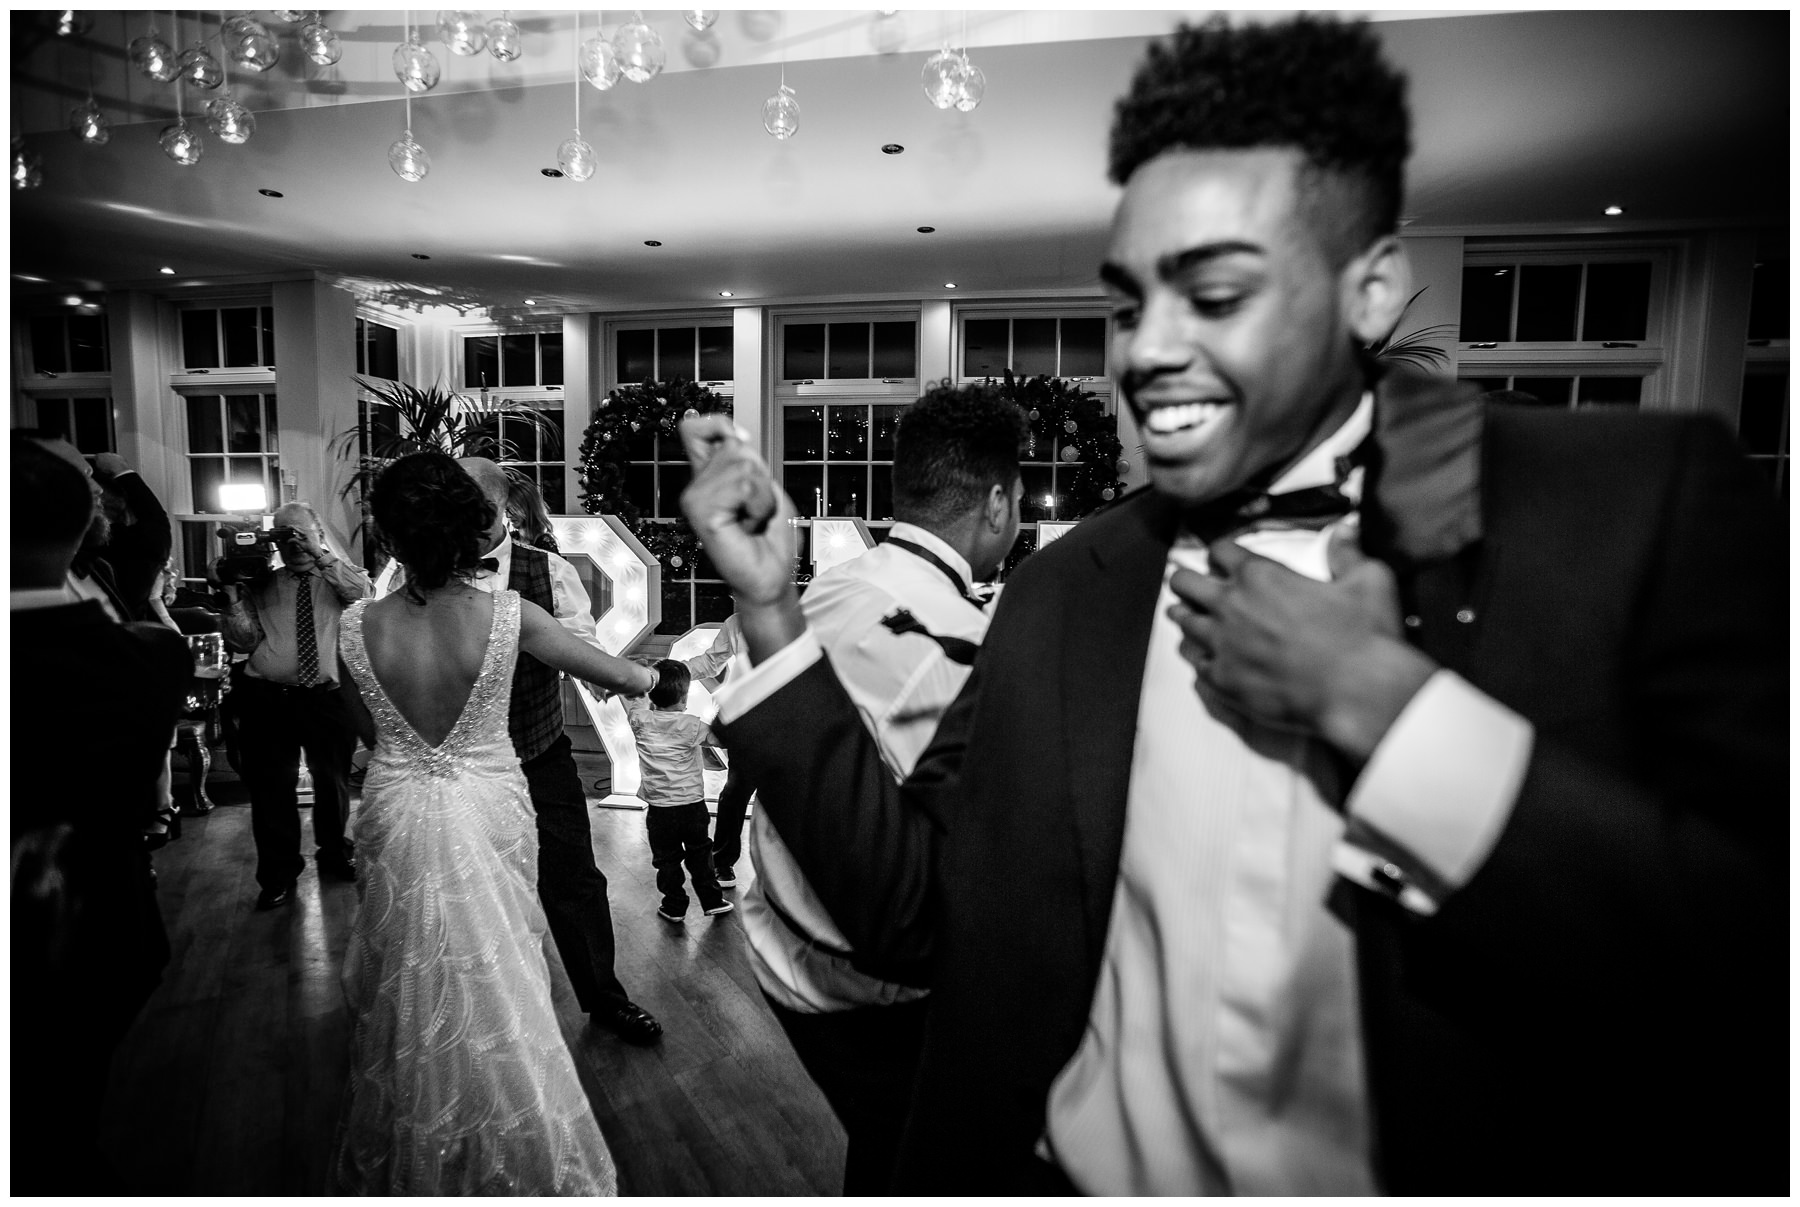 grooms brother dancing while bride and groom dance together in the background